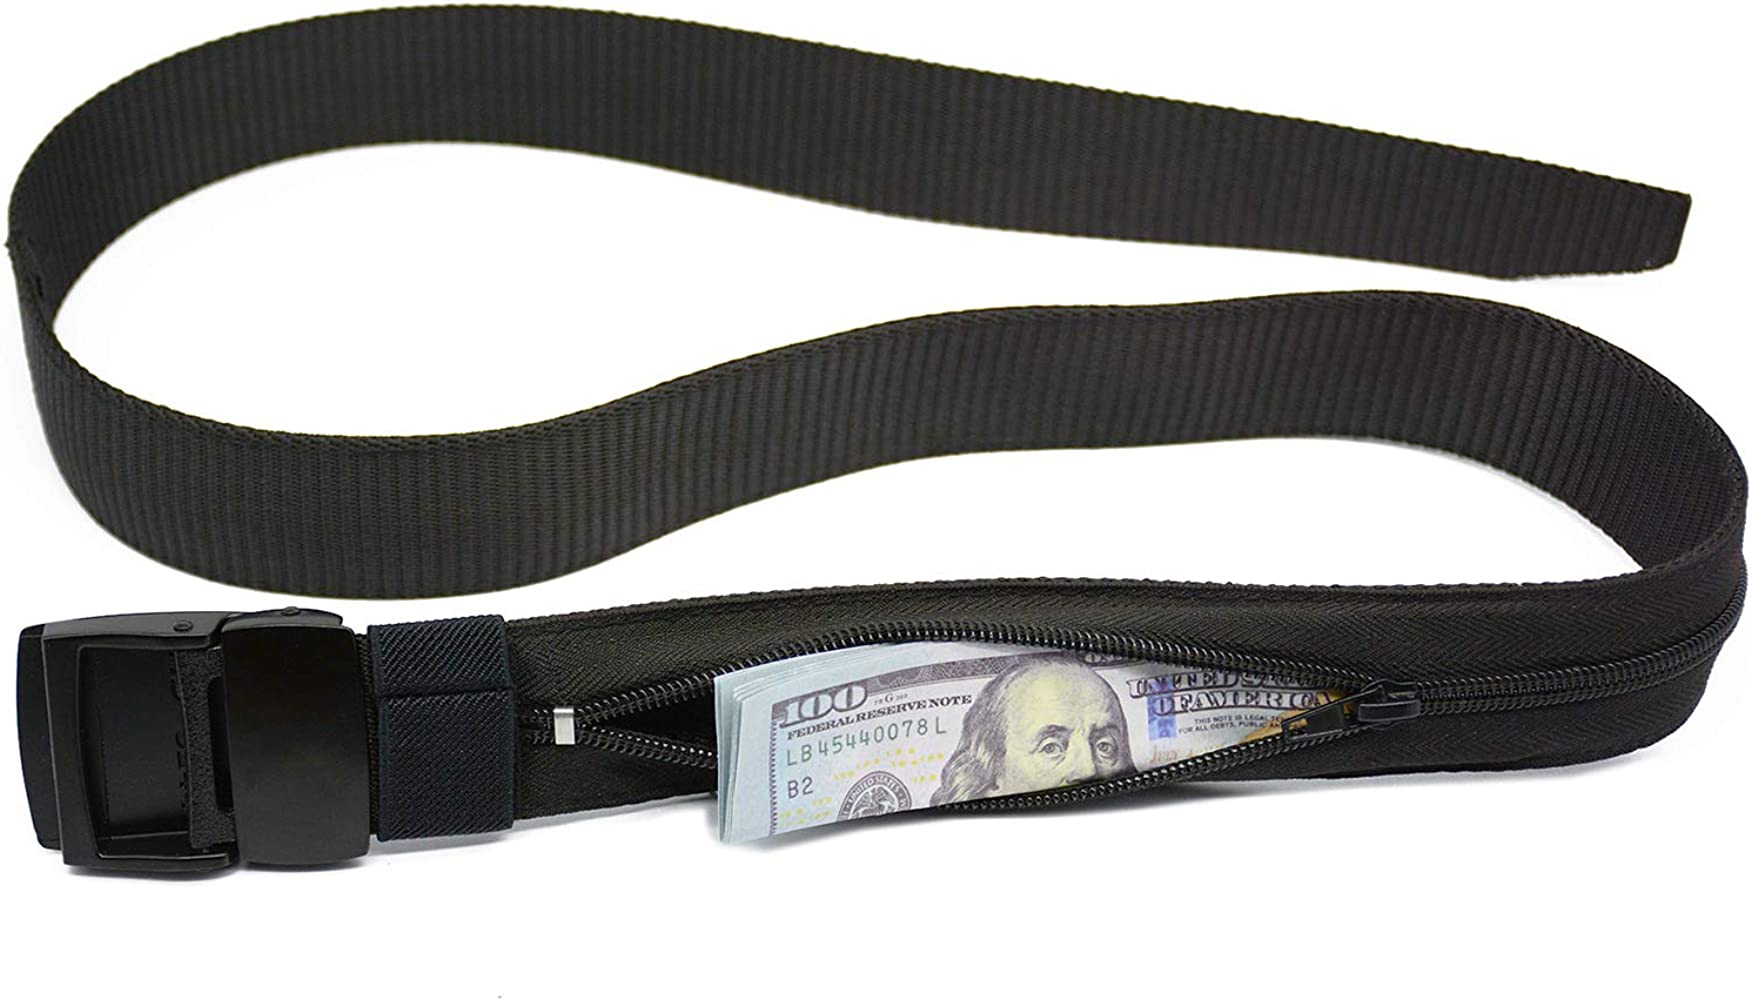 Men Nylon Travel Security Belt Hiker Military Style With Web Breathable Tactical Money Pouch Black and Brown Plastic Buckle